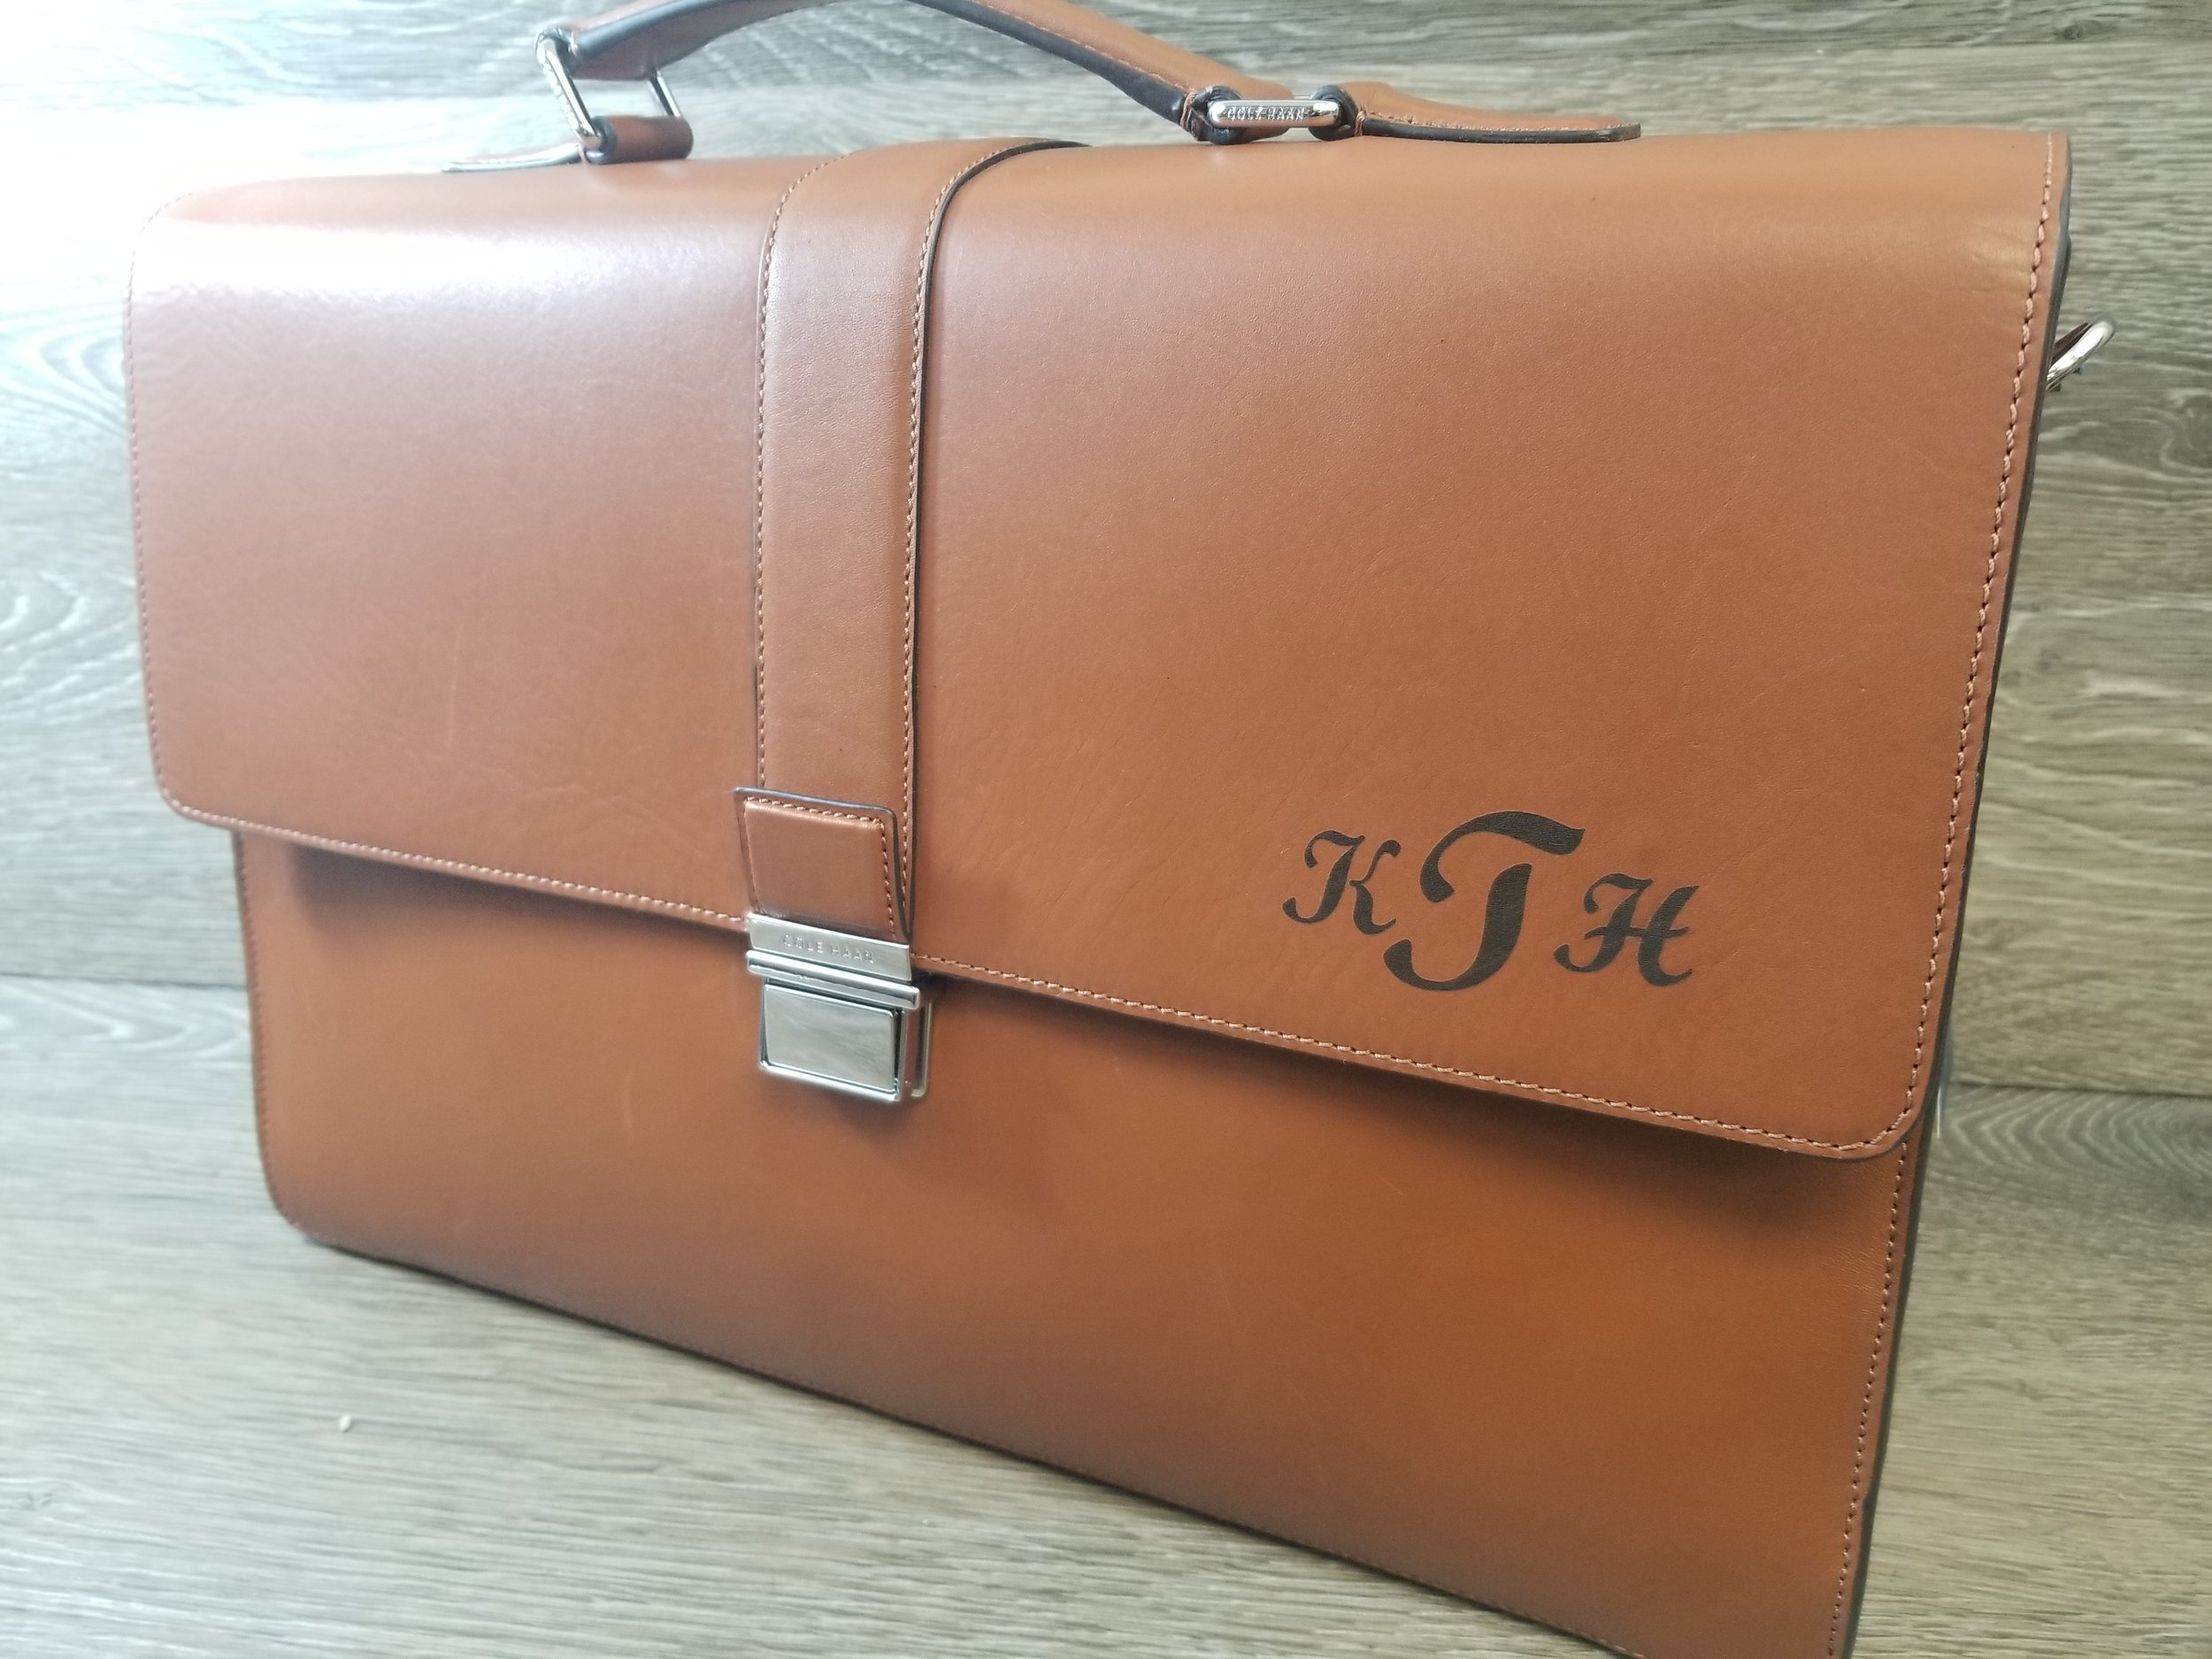 Personalized Leather Bags/Briefcases - Have your design or text laser engraved, marked, or etched on leather bags, purses, briefcases, luggage, and more.